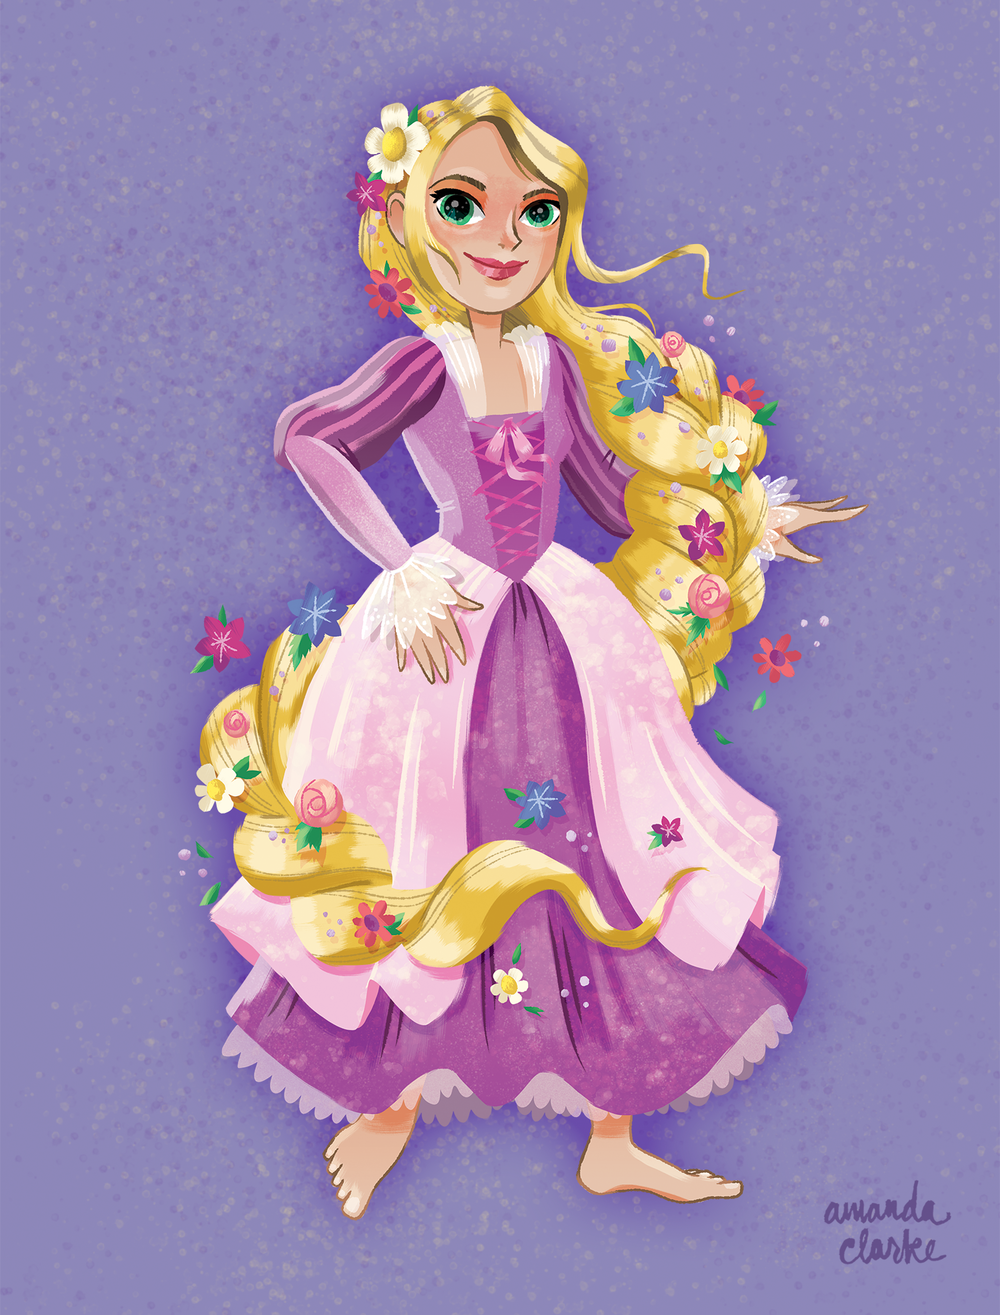 Rapunzel character concept for Hasbro's Disney Dreamers line.